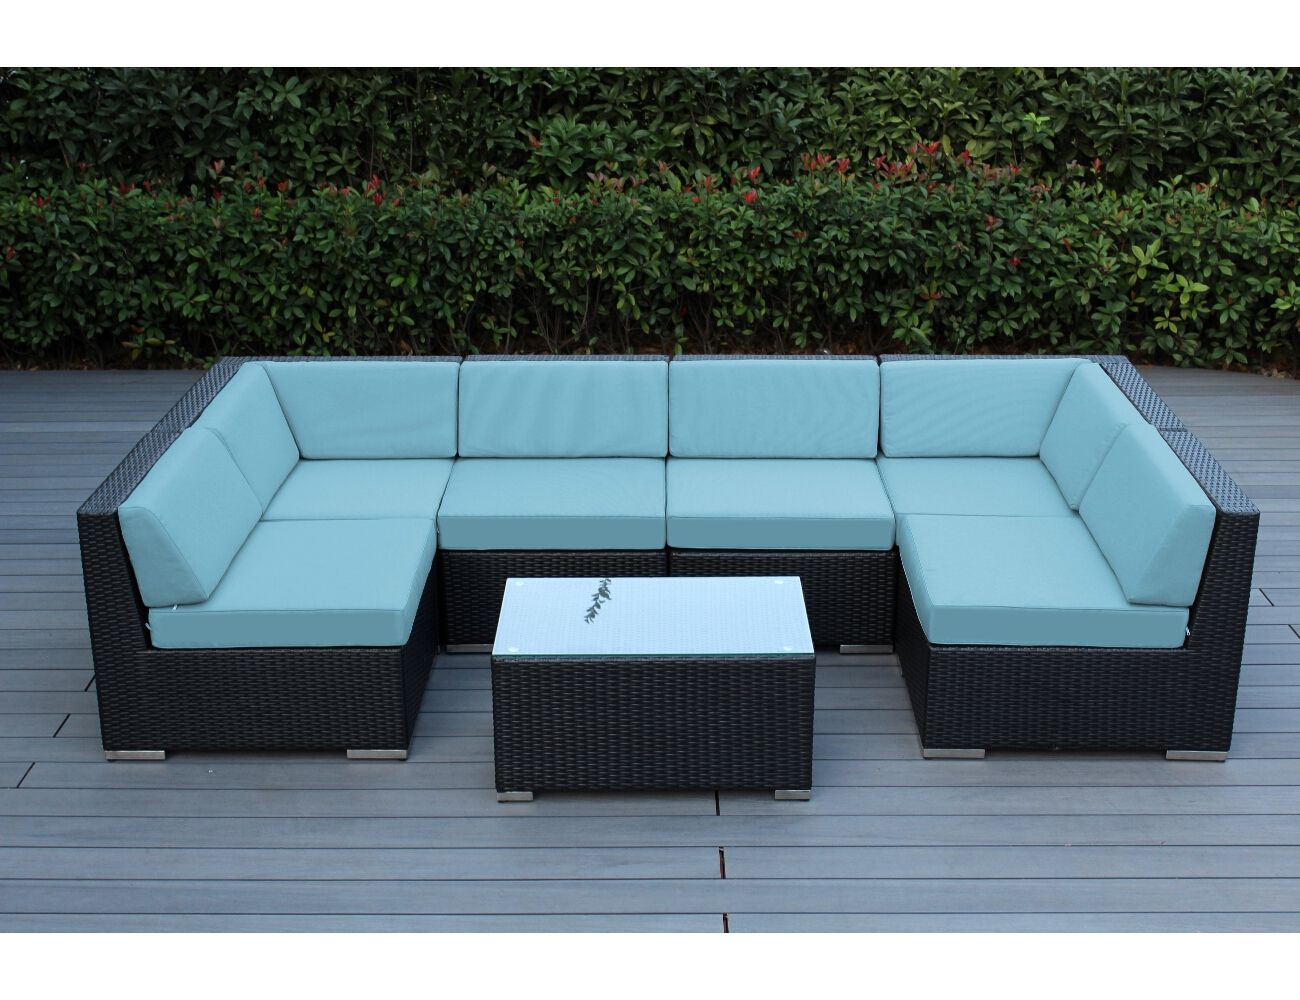 Urban Sofa Barneveld Sunbrella Mineral Blue With Black Wicker Ohana Wicker Furniture